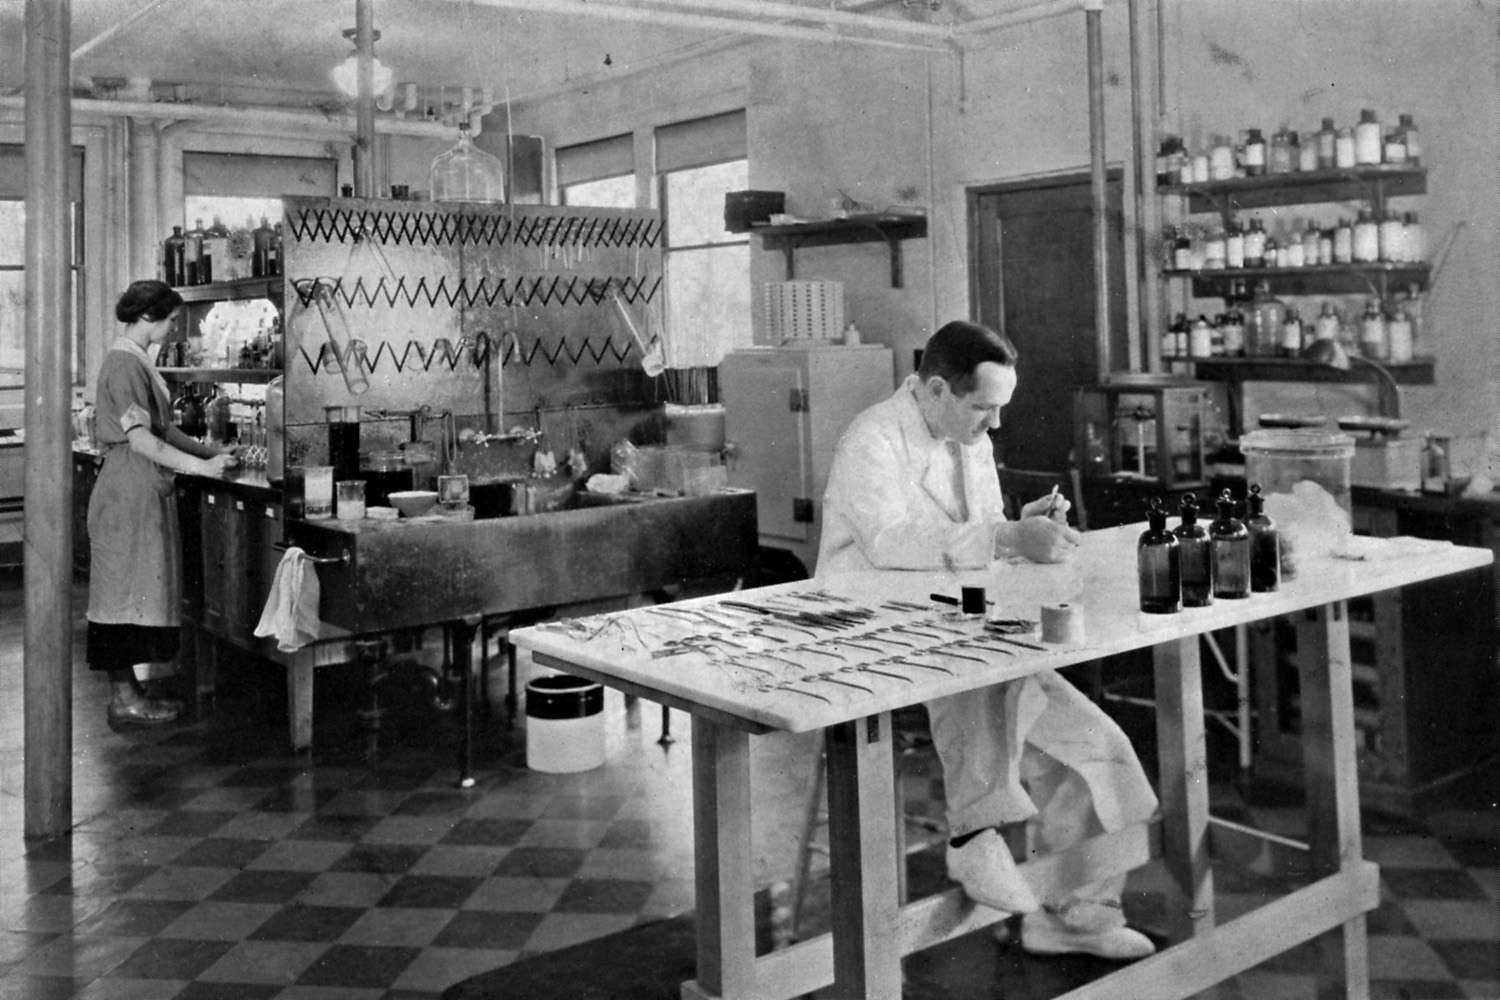 Free Hospital for Women, Fearing Lab, Olive and George Van Siclen Smith, circa 1934.